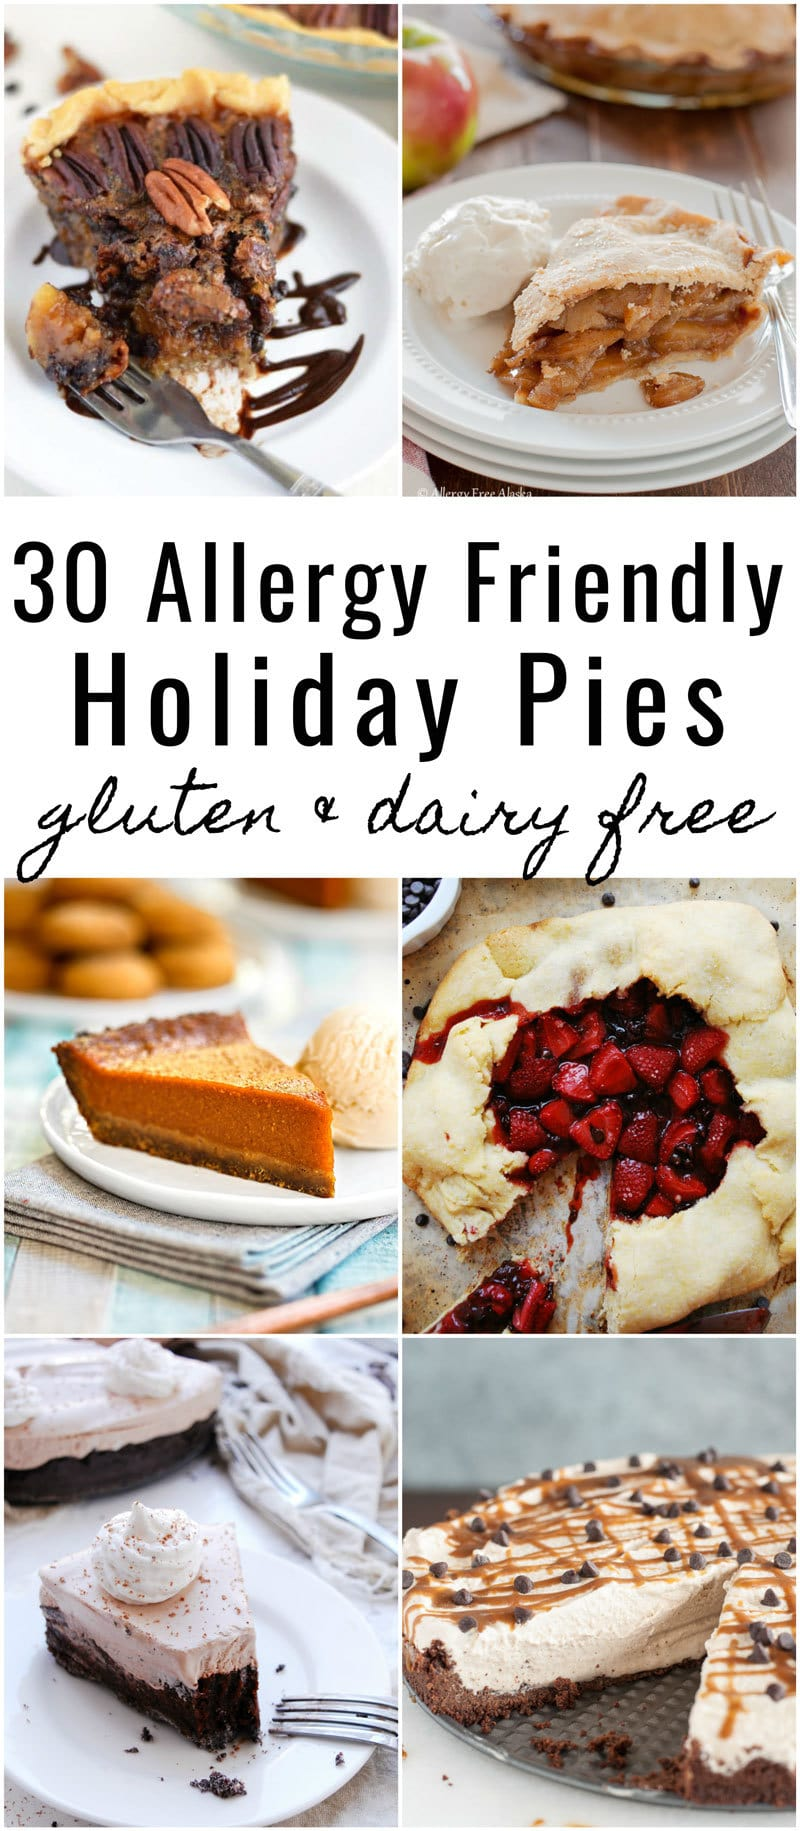 Holidays with food allergies shouldn't be stressful! If you're craving pie for Thanksgiving or Christmas, here are 30 allergy friendly pies that will fit many special diets - @TheFitCookie #glutenfree #dairyfree #Thanksgiving #Christmas